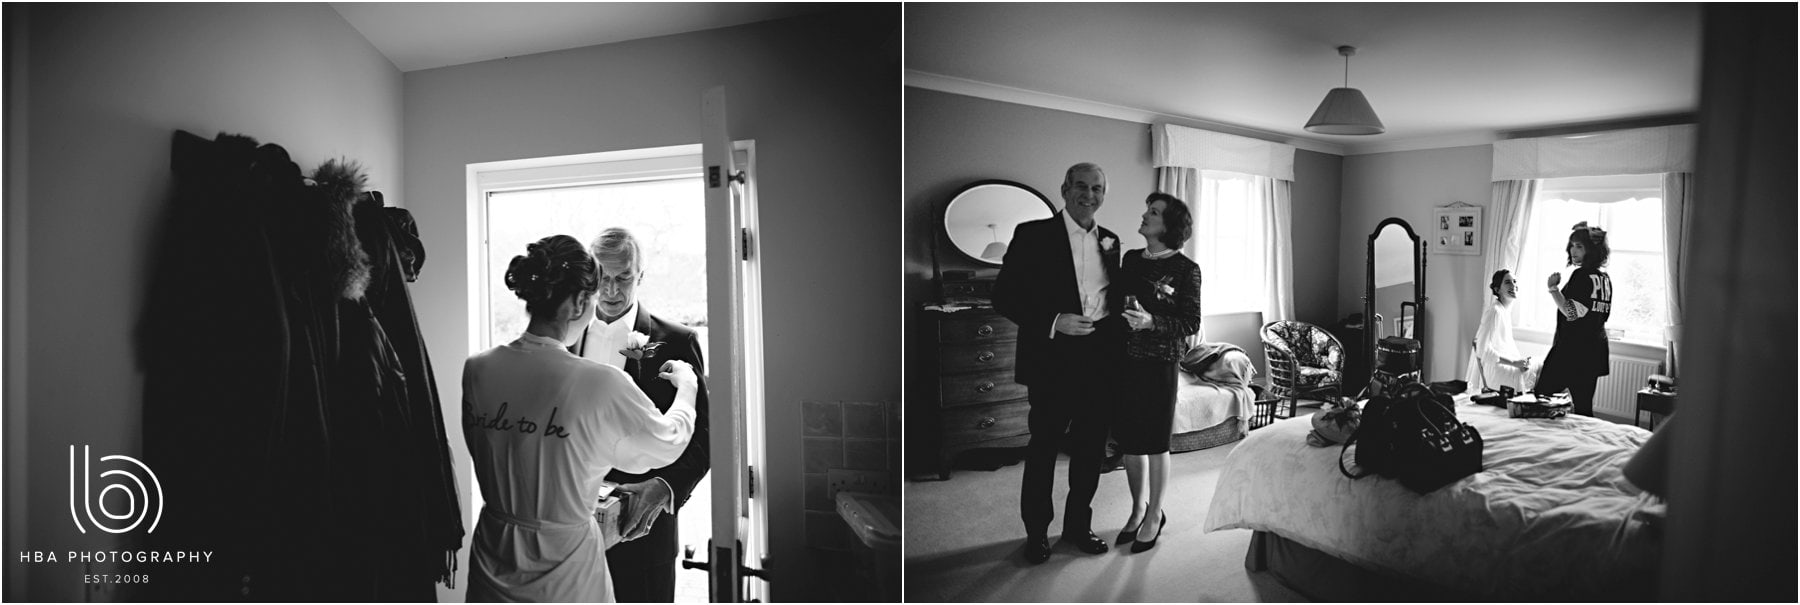 the mother and father of the bride